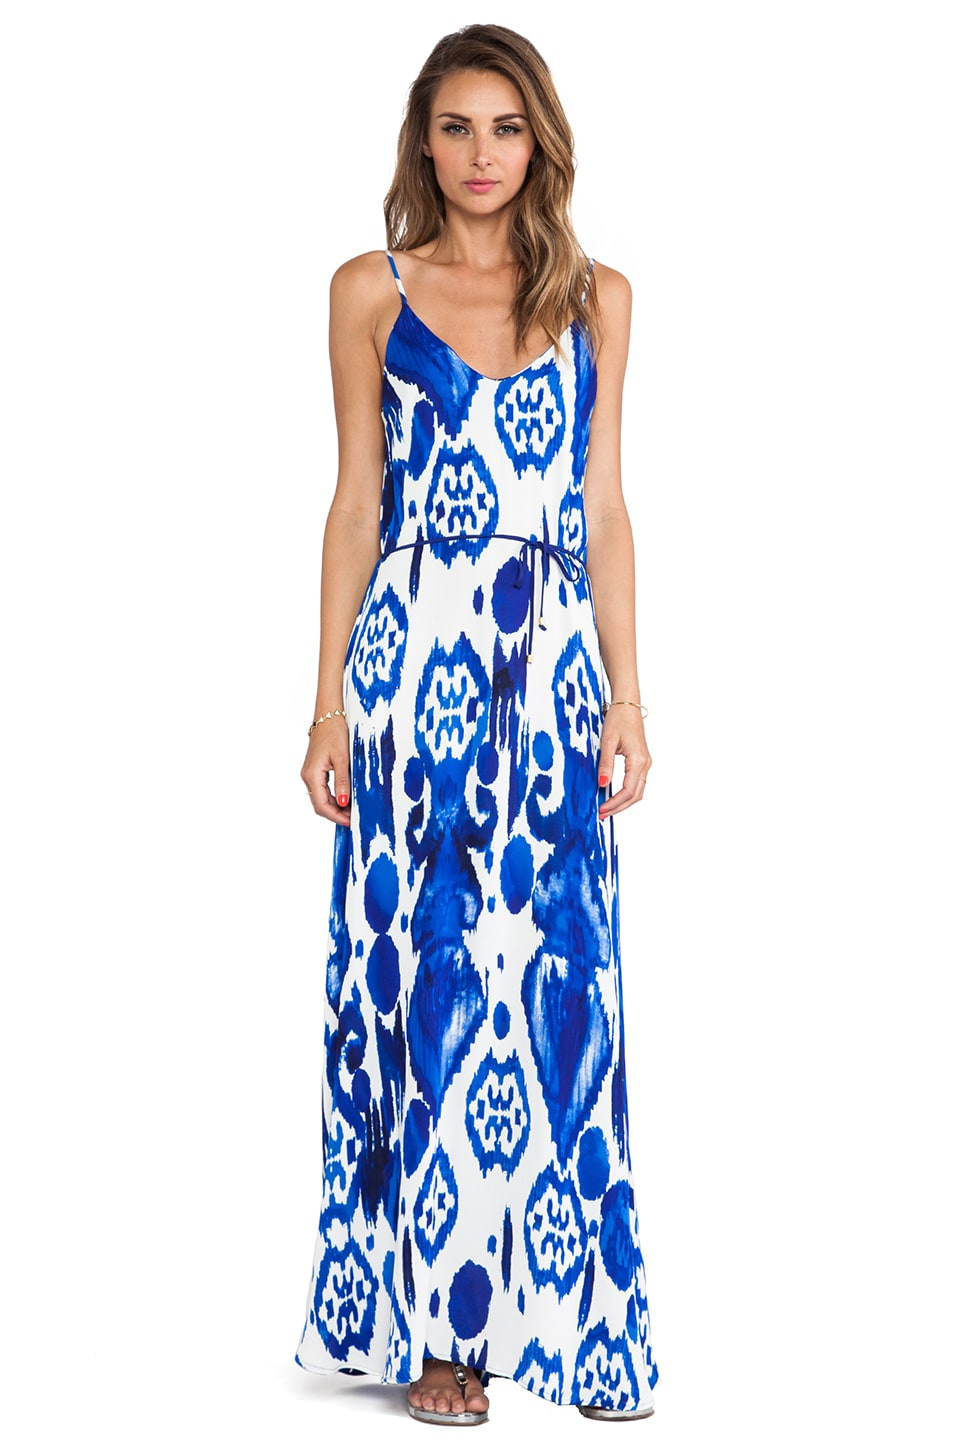 Karina Grimaldi Zeila Maxi Dress in Calico